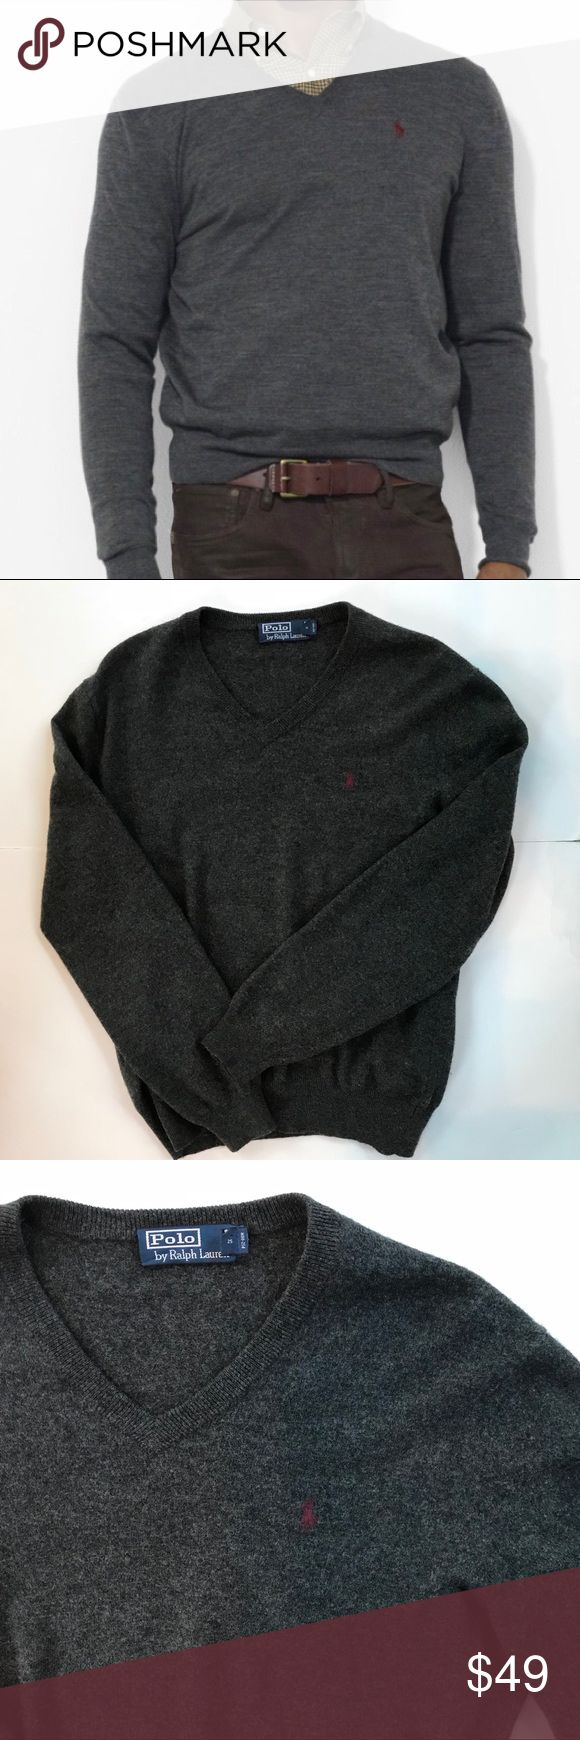 Ralph Lauren Gray Merino Wool V neck sweater Sz M Ralph Lauren classic v neck sweater. Soft merino wool. Note - the tags do not have fabric content; however, when I look up the item number it says merino wool. Tag is from Europe.   Measurements: Under arm to under arm  Arm length Shoulder to hem Ralph Lauren Sweaters V-Neck